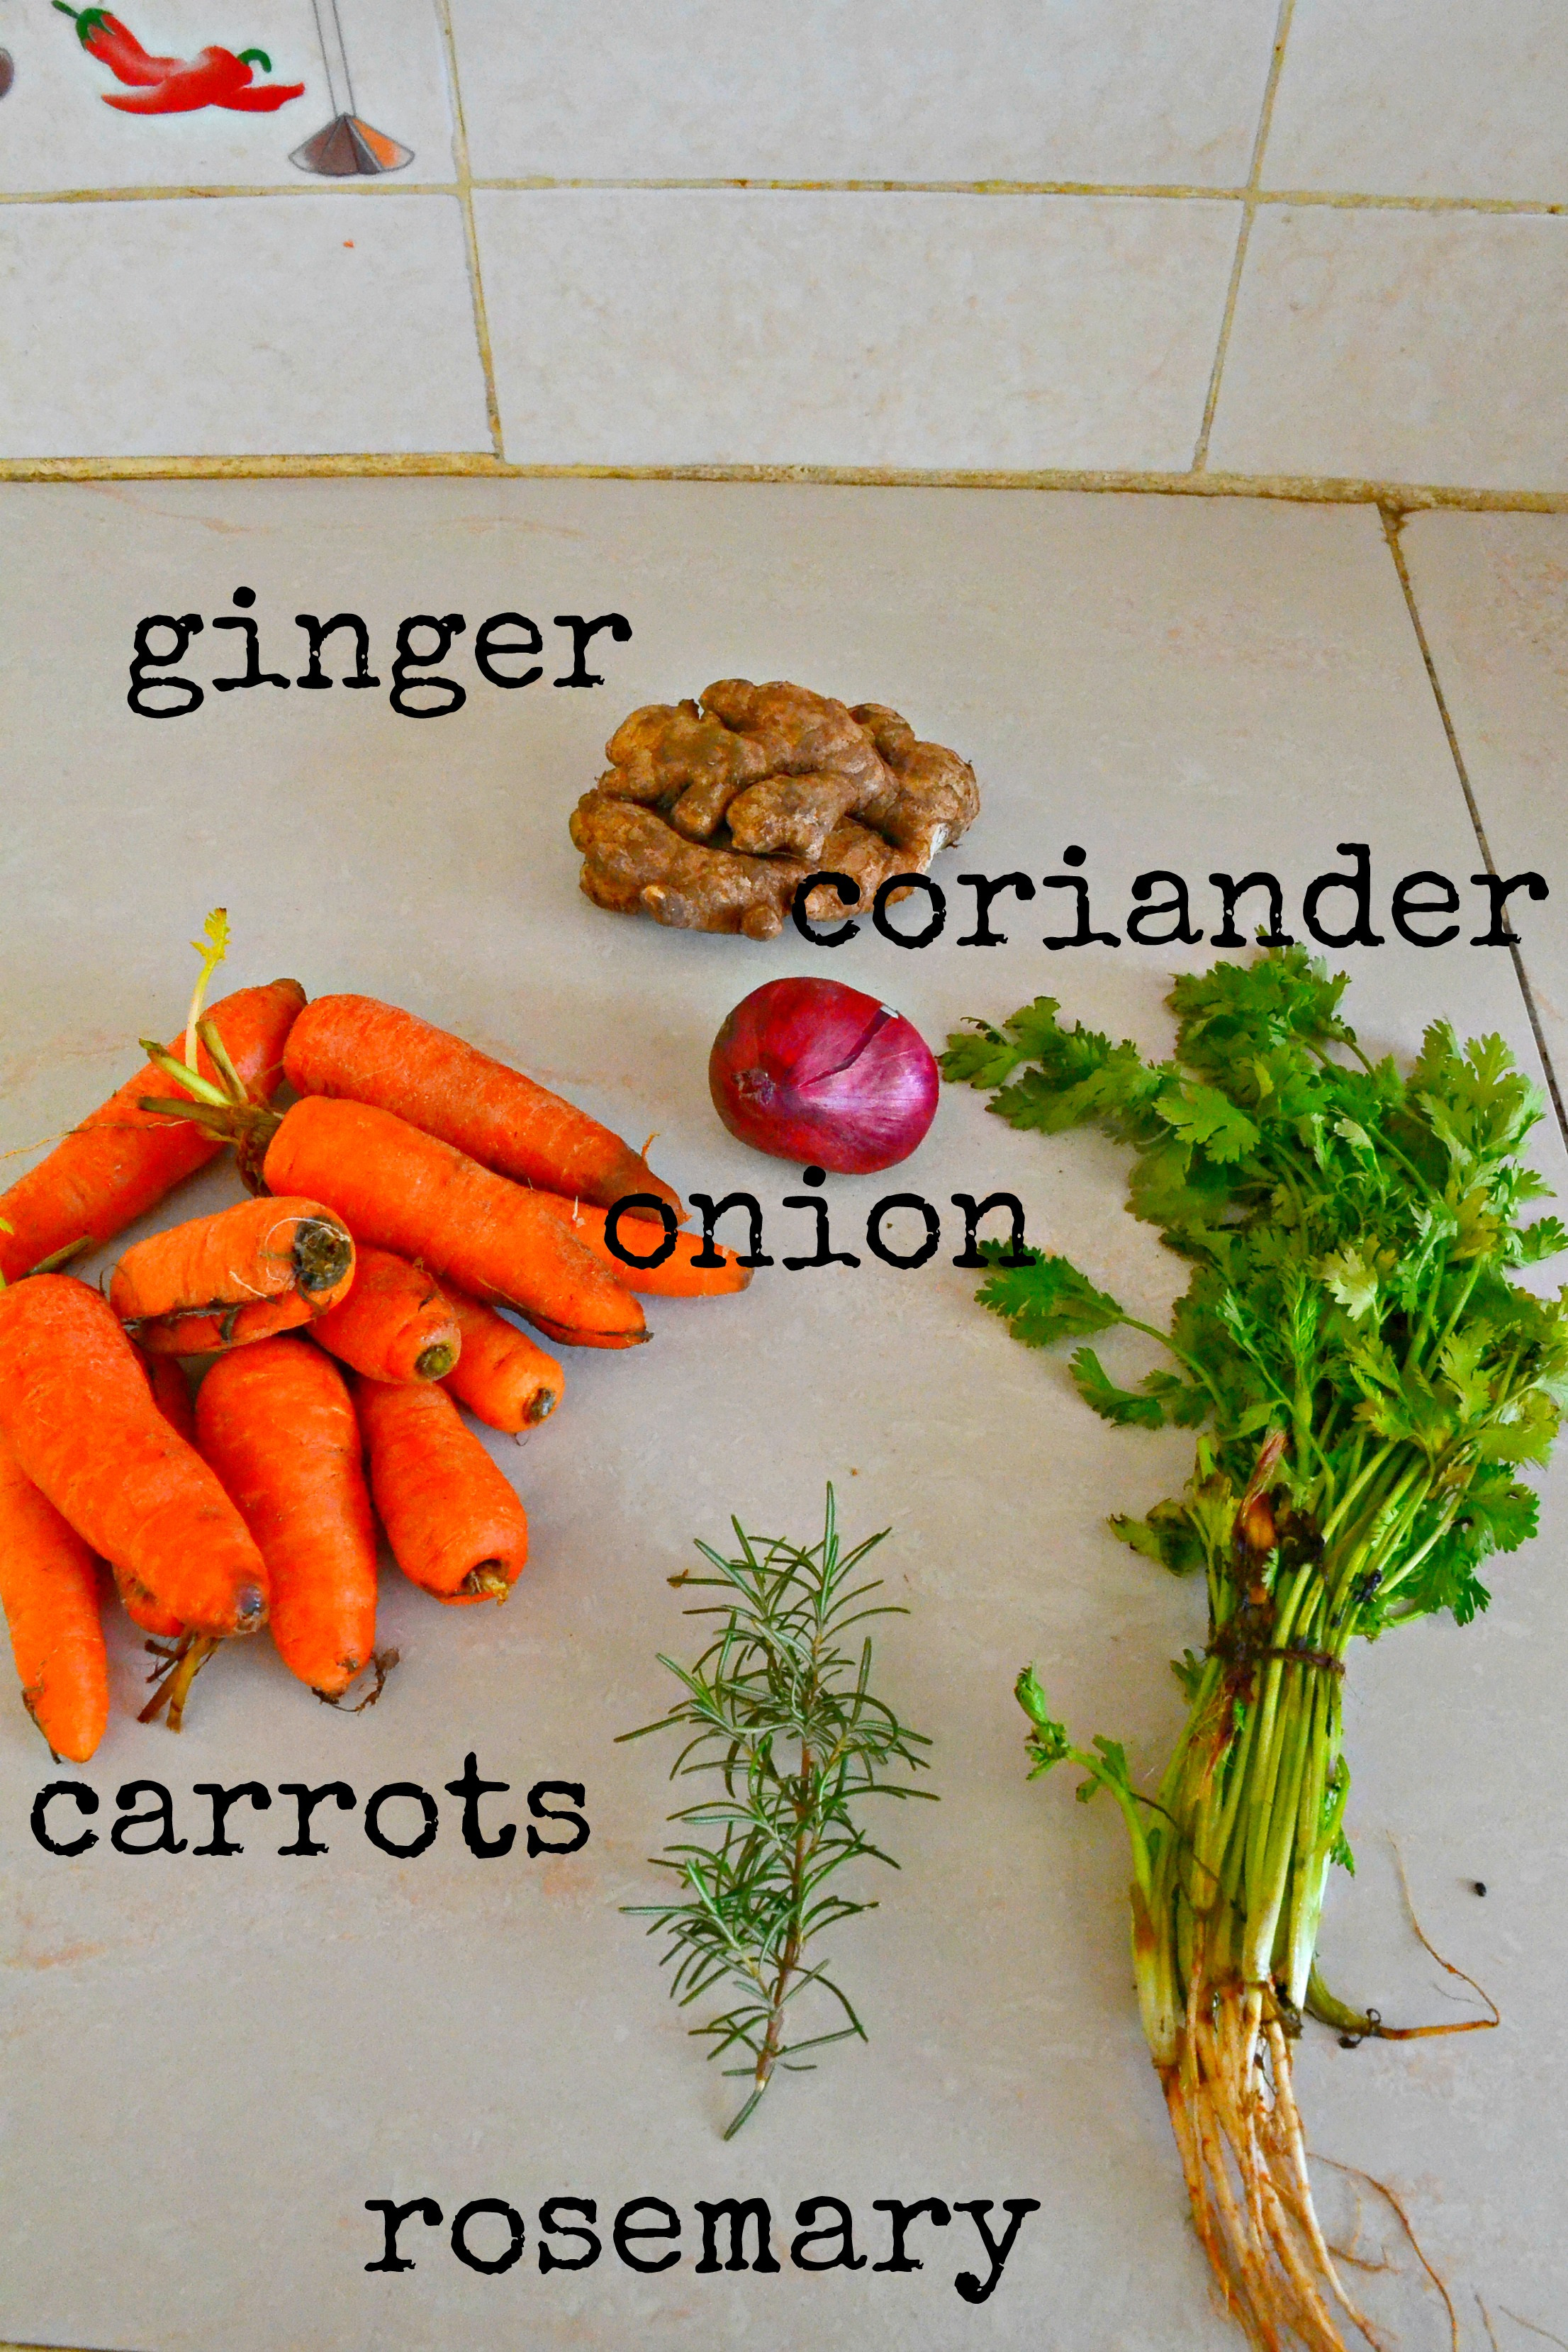 carrot-fingers-recipe-ingredients_how-to-make-carrots_carrot-recipes